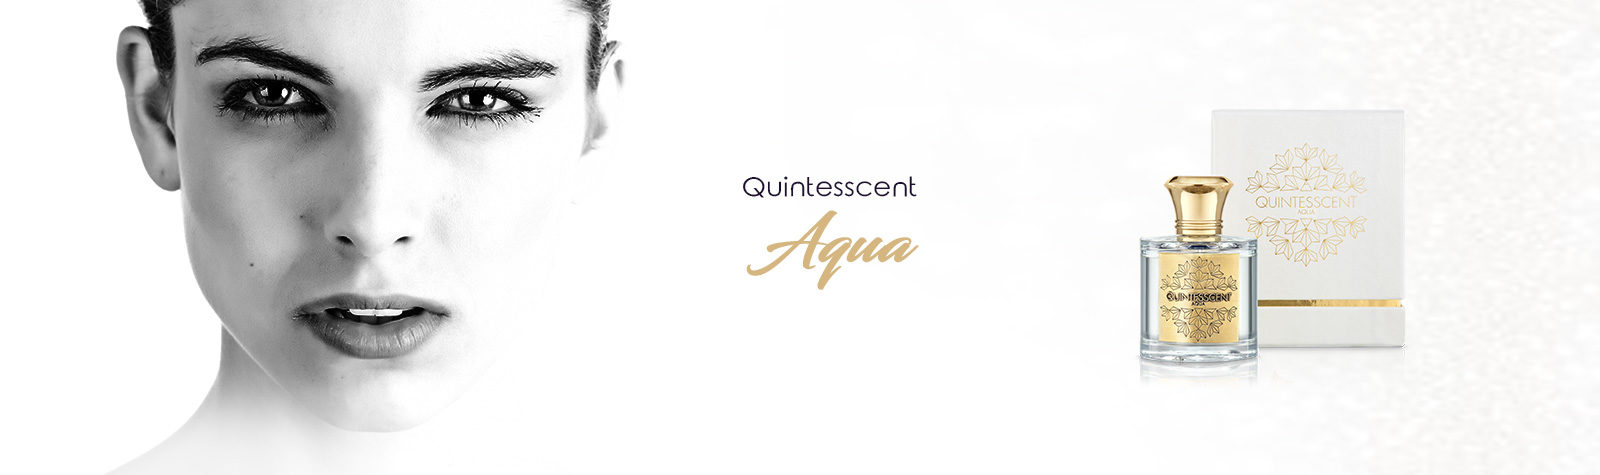 Quintesscent.com | A scent is the time capsule | Aqua Perfume